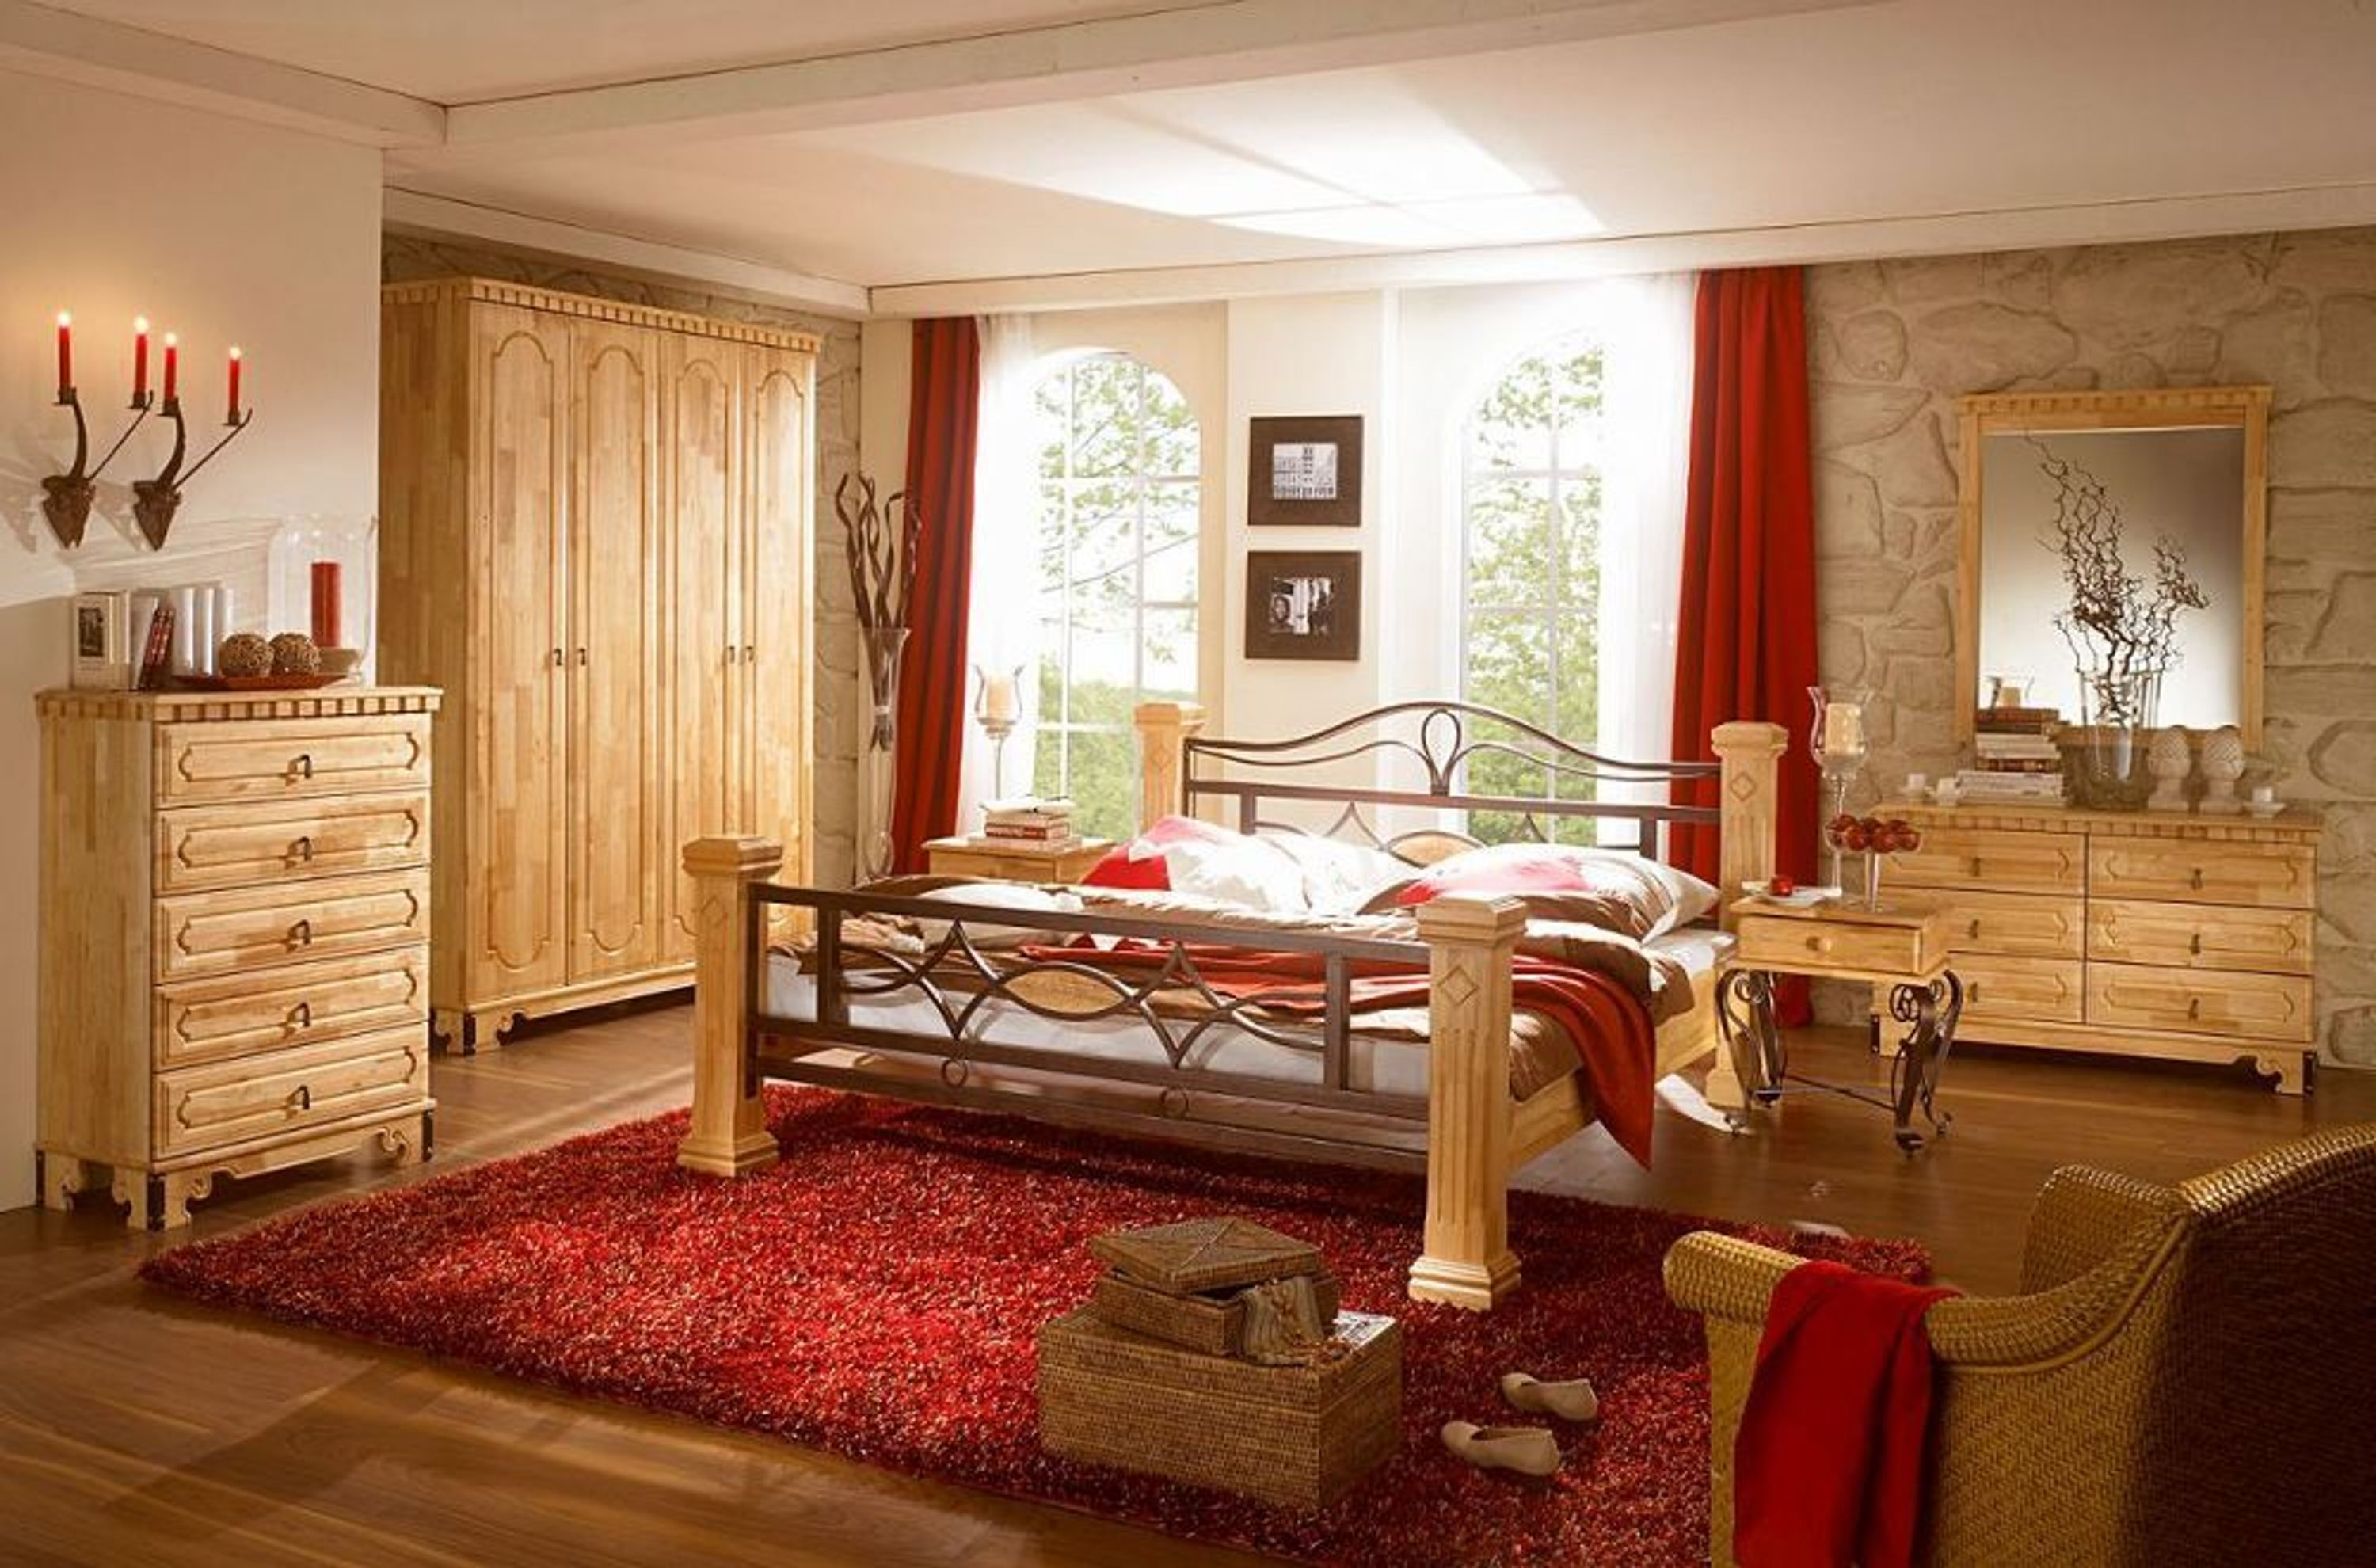 schlafzimmer komplett holz bett 180x200 kleiderschrank. Black Bedroom Furniture Sets. Home Design Ideas